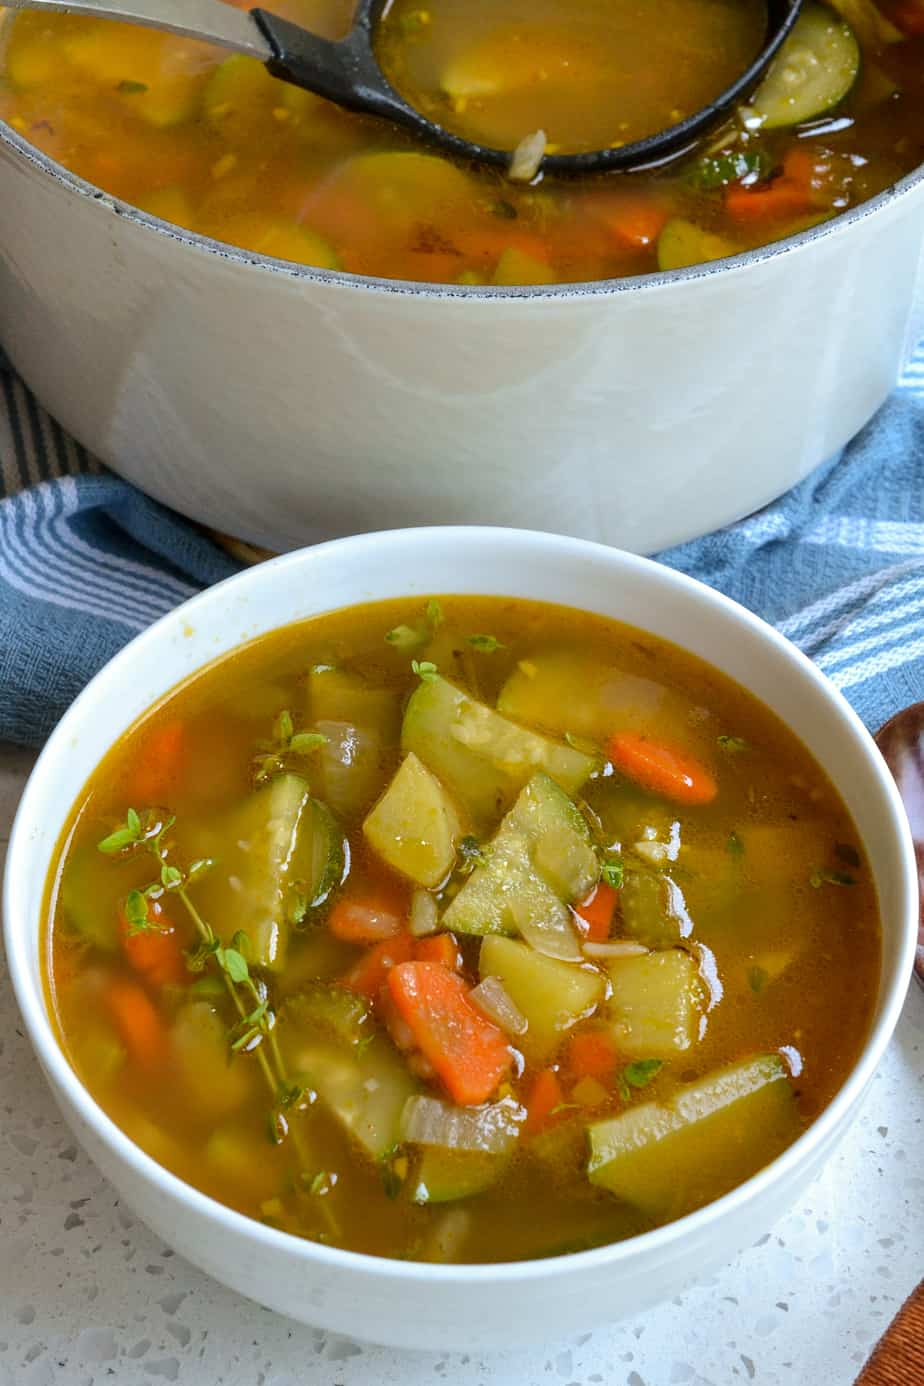 A bowl full of zucchini vegetable soup.